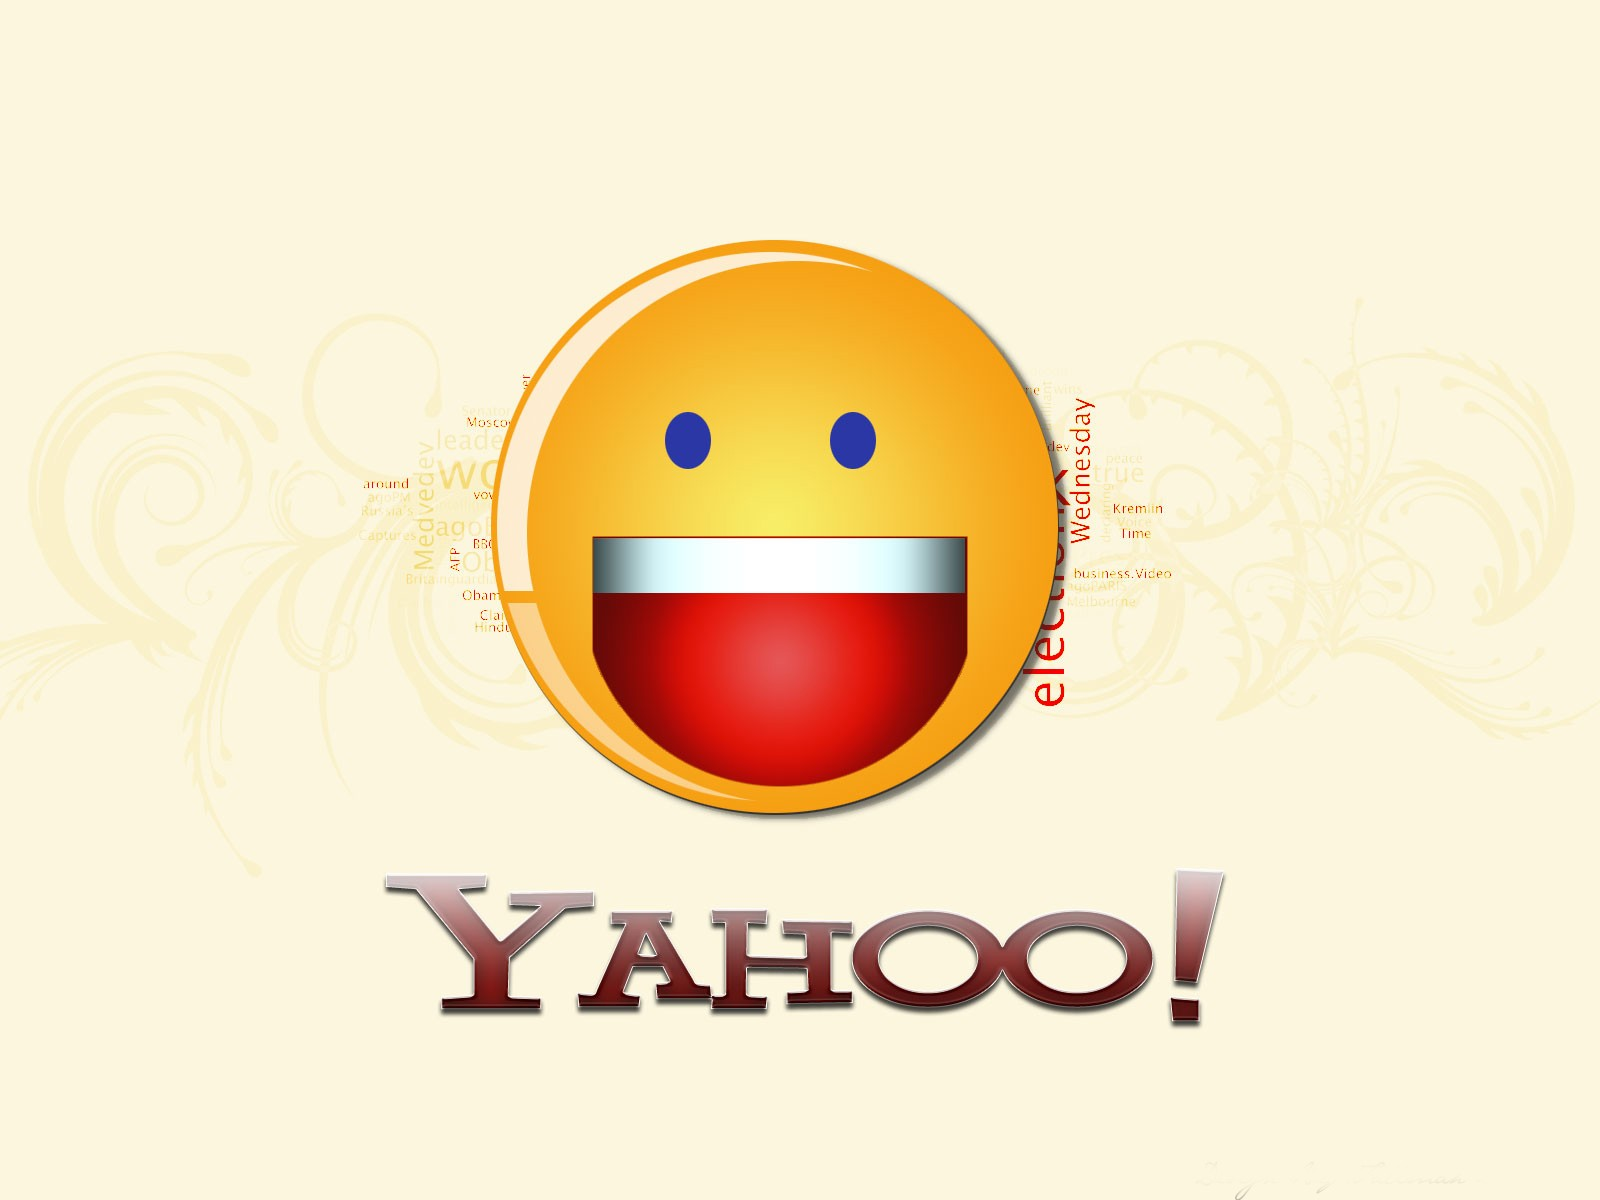 Yahoo Wallpapers and Background Images   stmednet 1600x1200